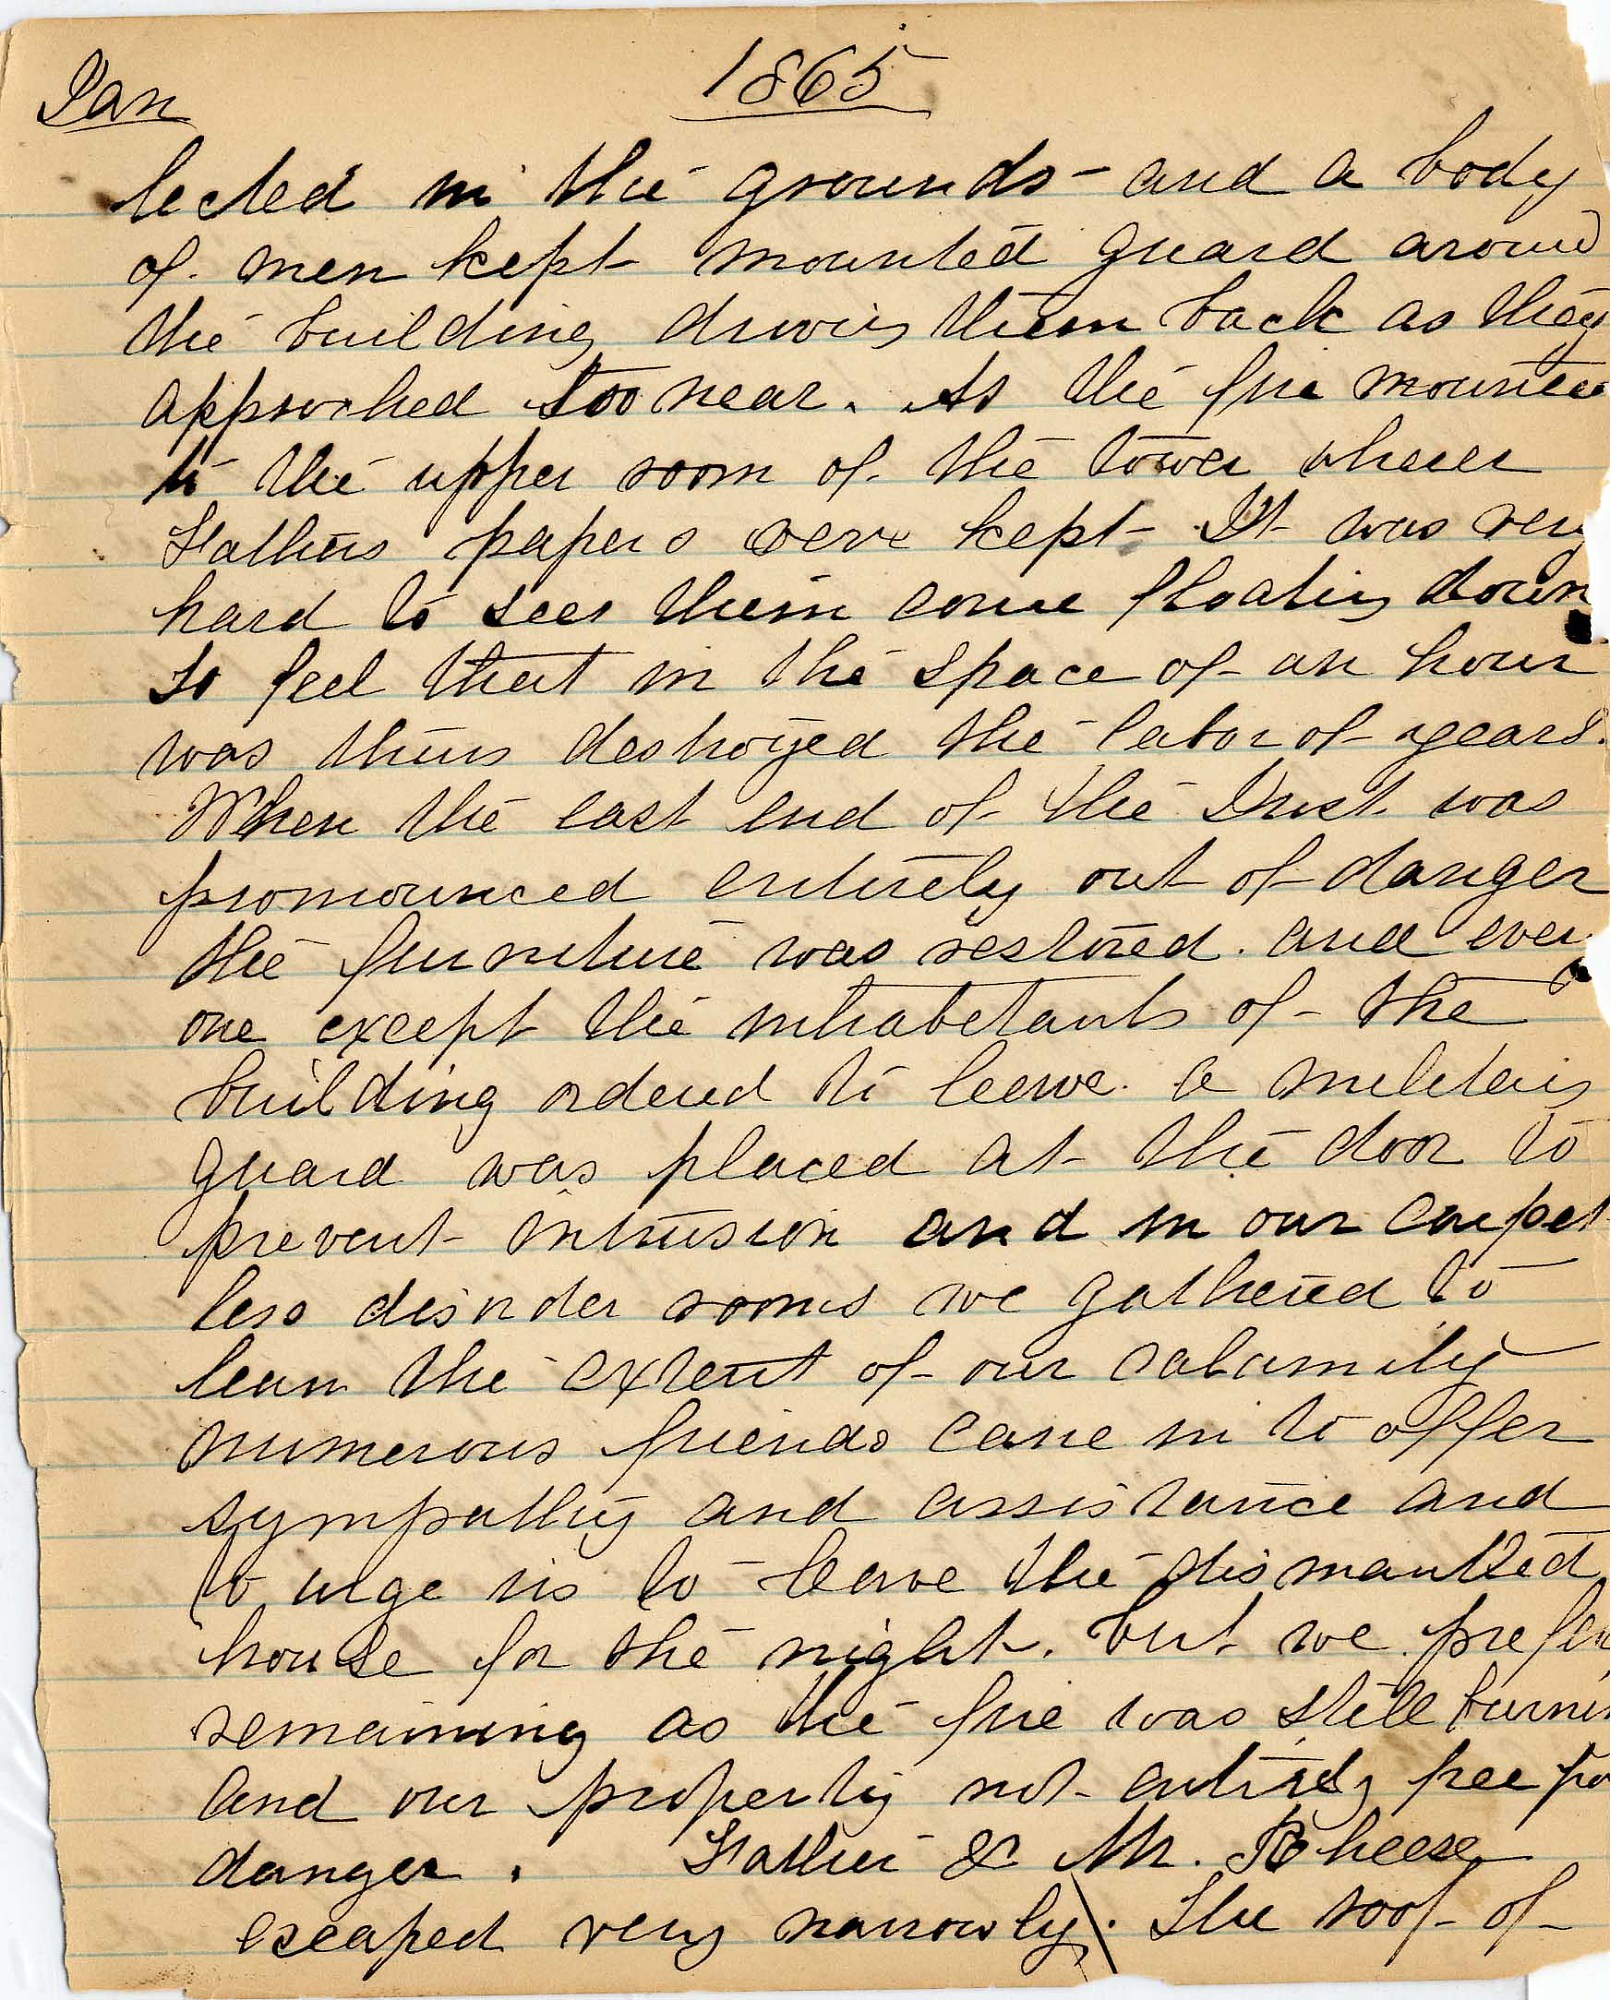 Mary Henry Diary, Fire - Jan 1865 - Page 3